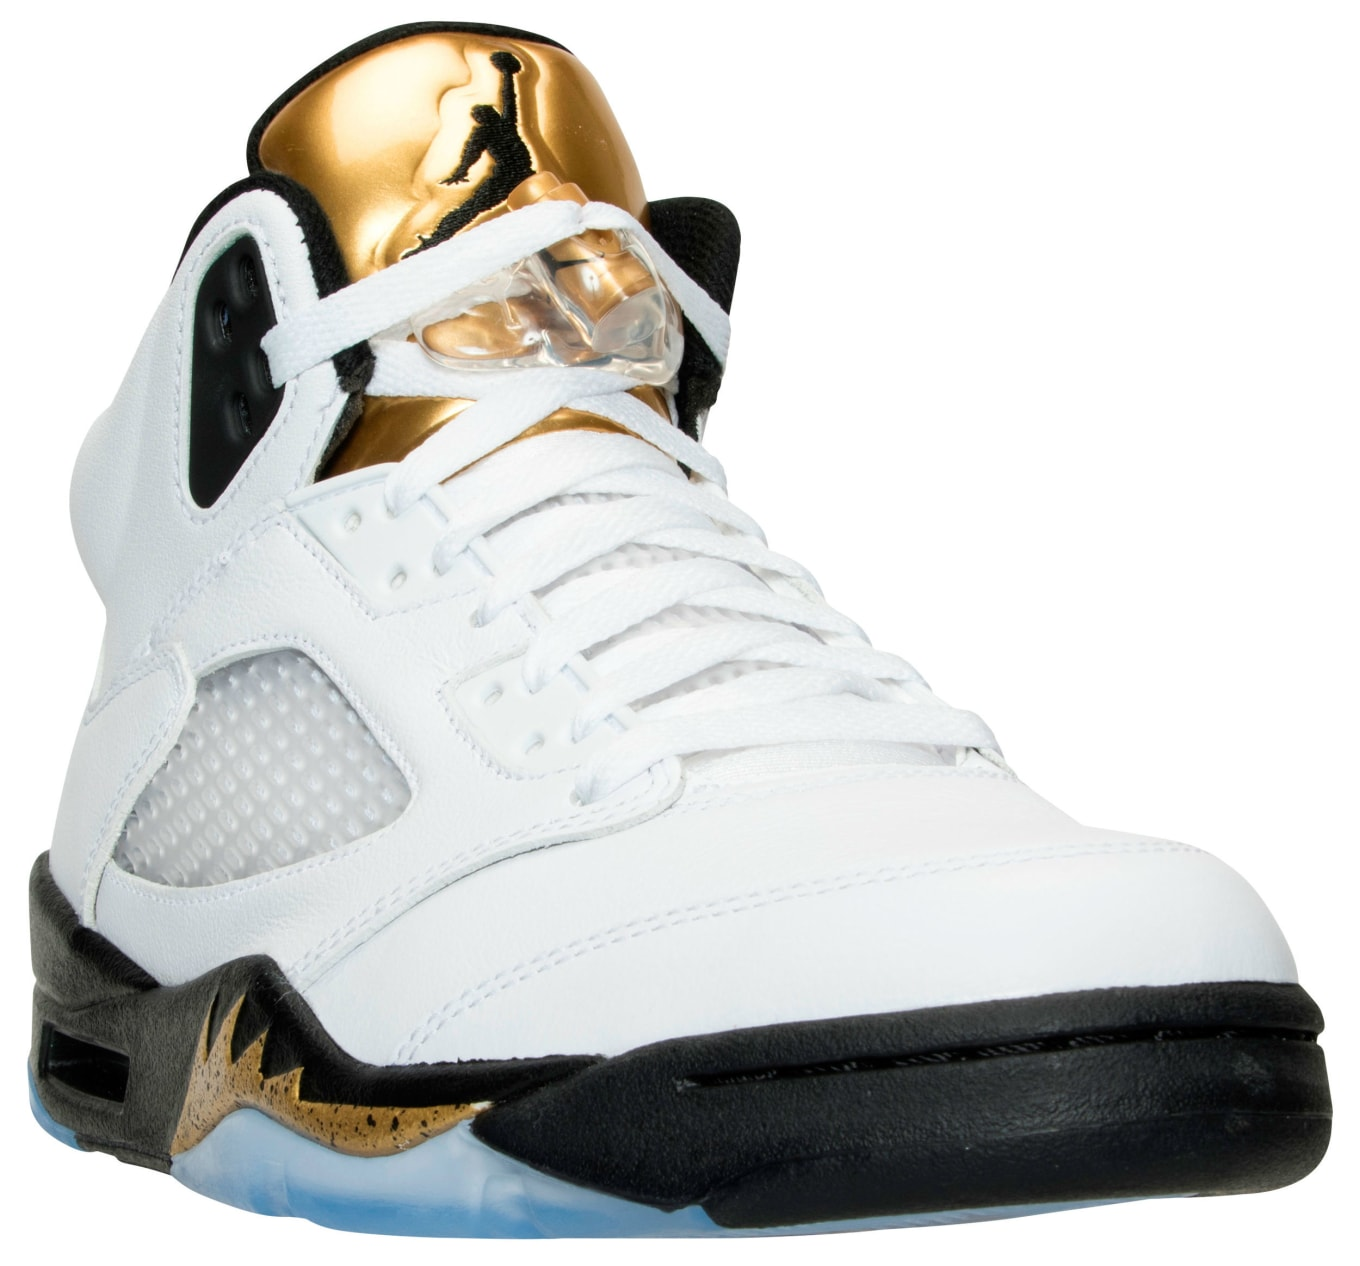 Air Collector Gold Jordan Sole 5 Olympic Uxfq8UF